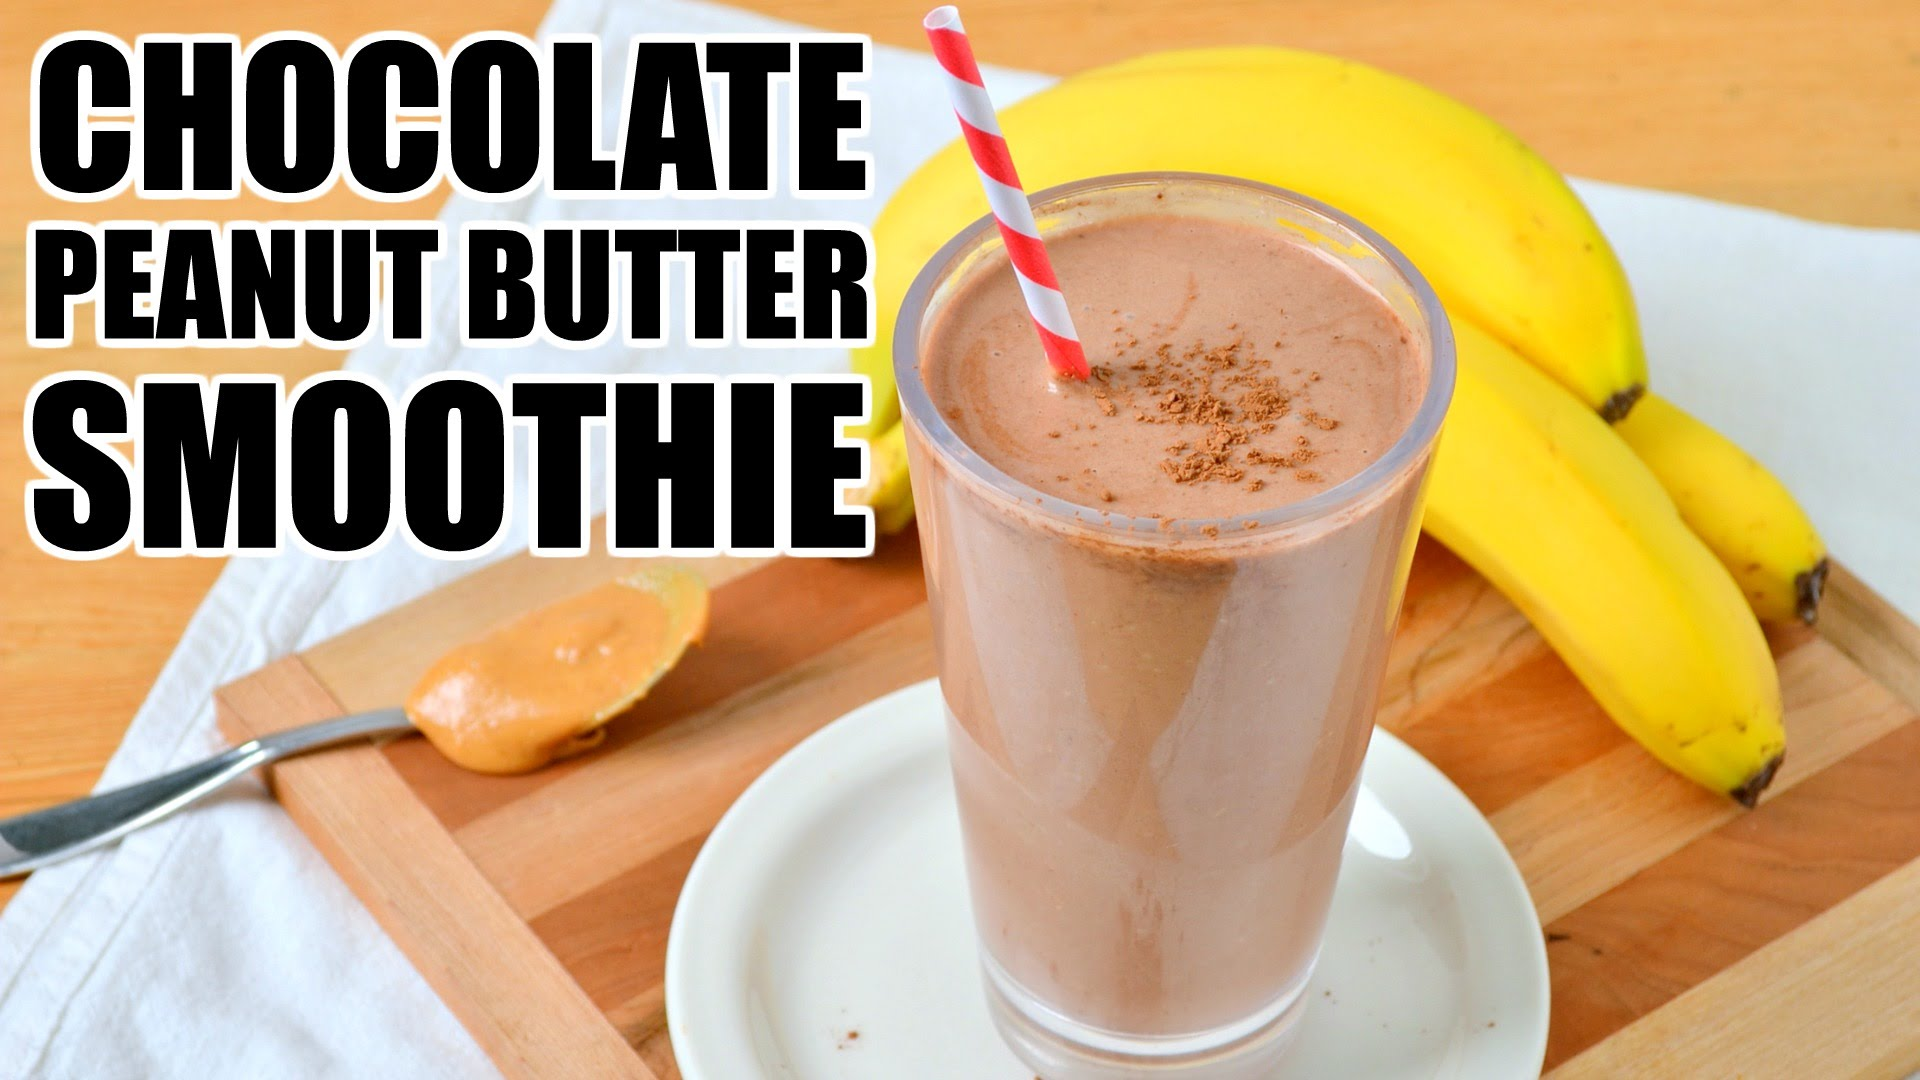 14 Fast & Easy Chocolate Smoothie Recipes